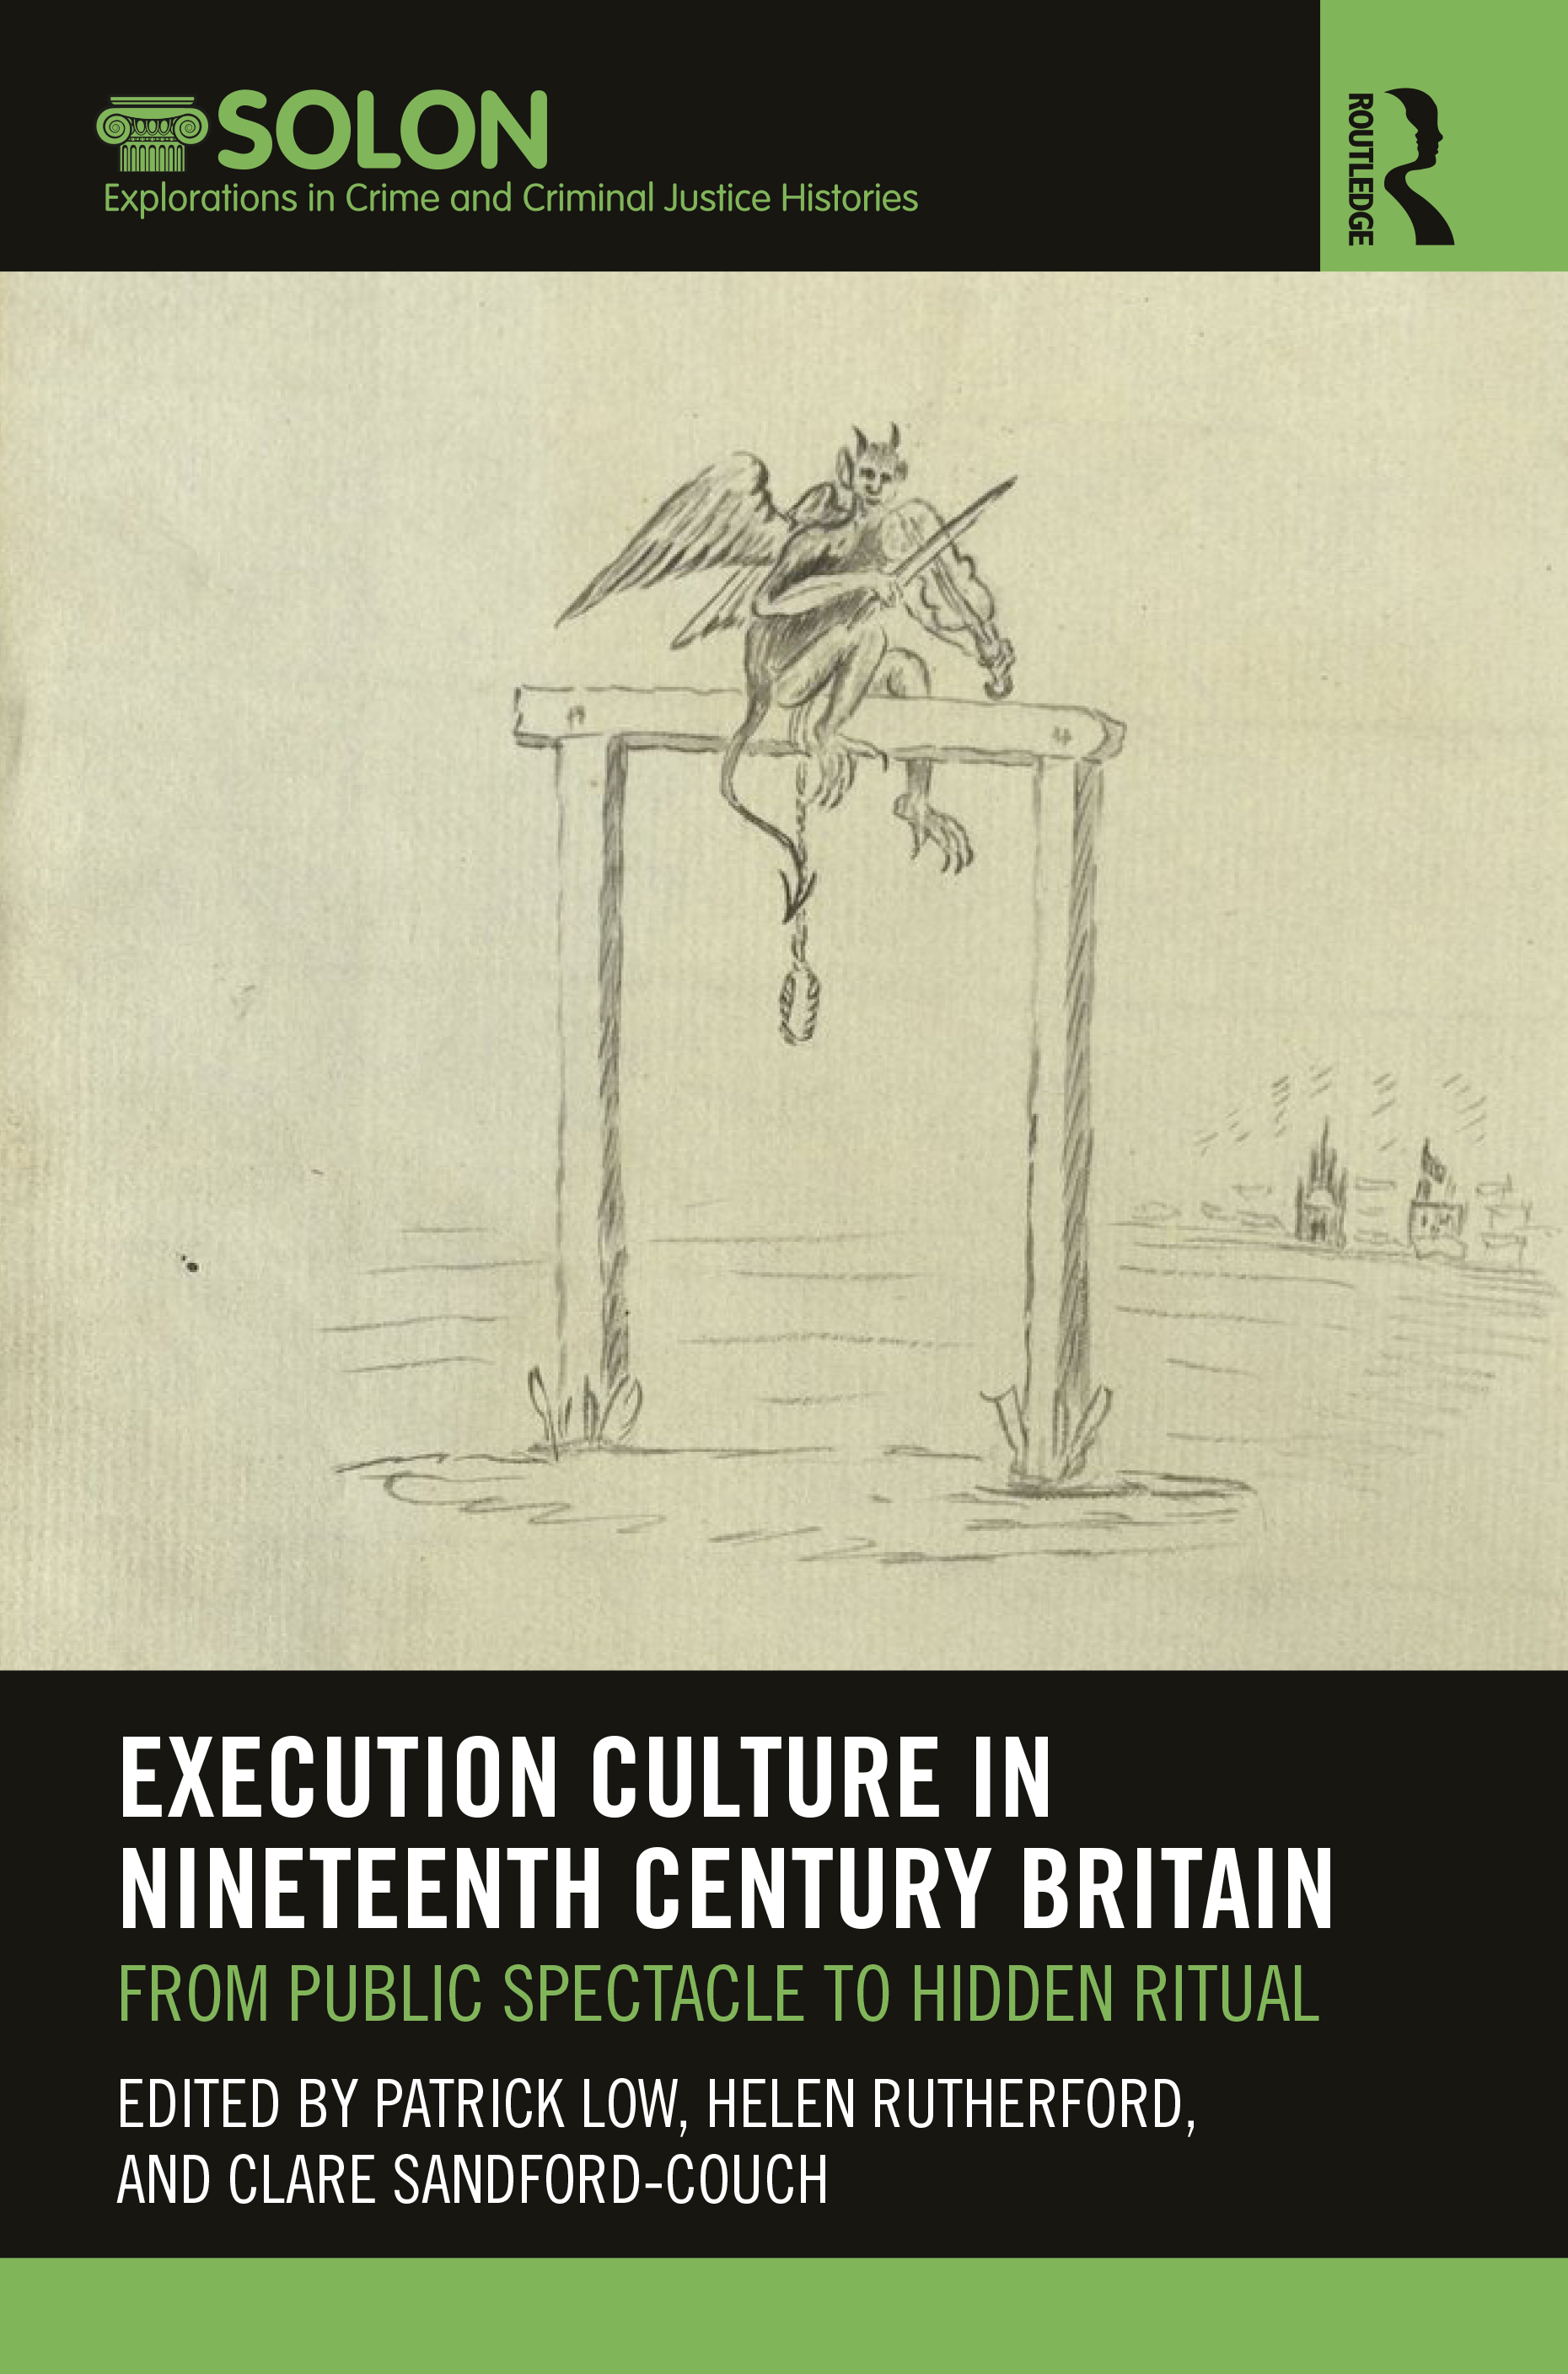 From Public Spectacle to Hidden Ritual: Execution Culture in Nineteenth Century Britain book cover